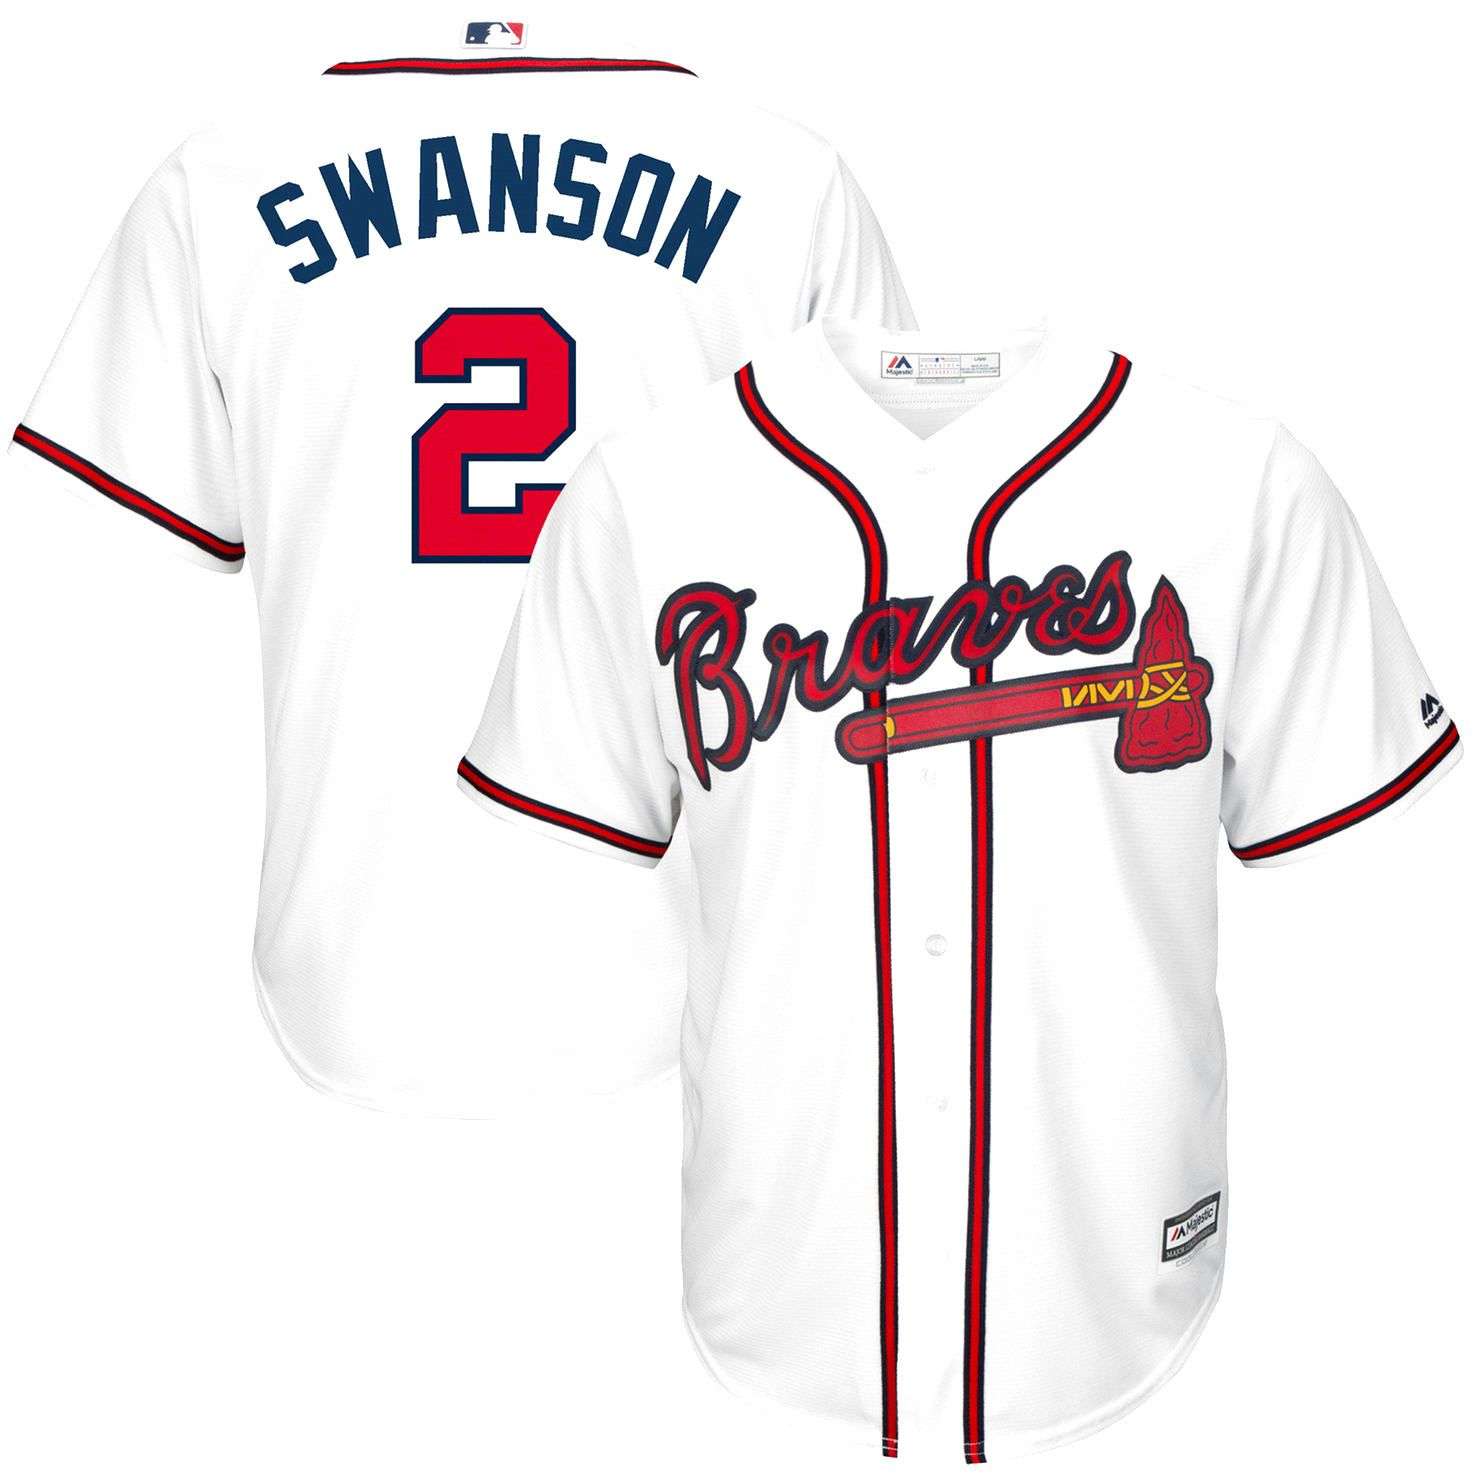 Dansby Swanson Atlanta Braves Majestic Home Cool Base Player Jersey White 119 99 Atlanta Braves Jersey Braves Jersey Atlanta Braves